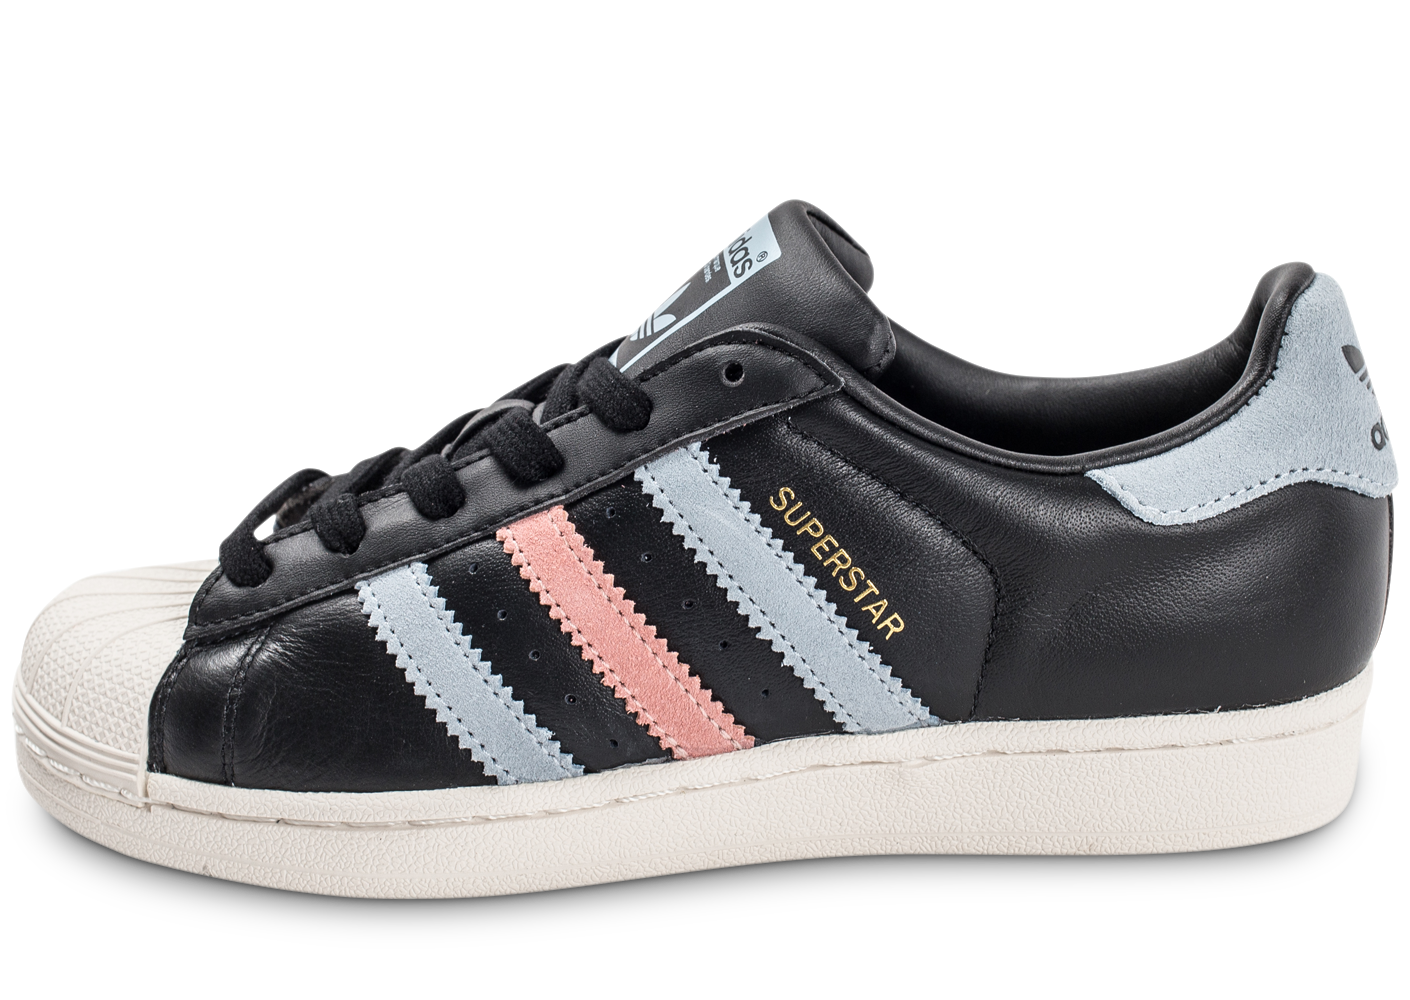 adidas Baskets/Tennis Superstar Cuir Core Black Femme. 1